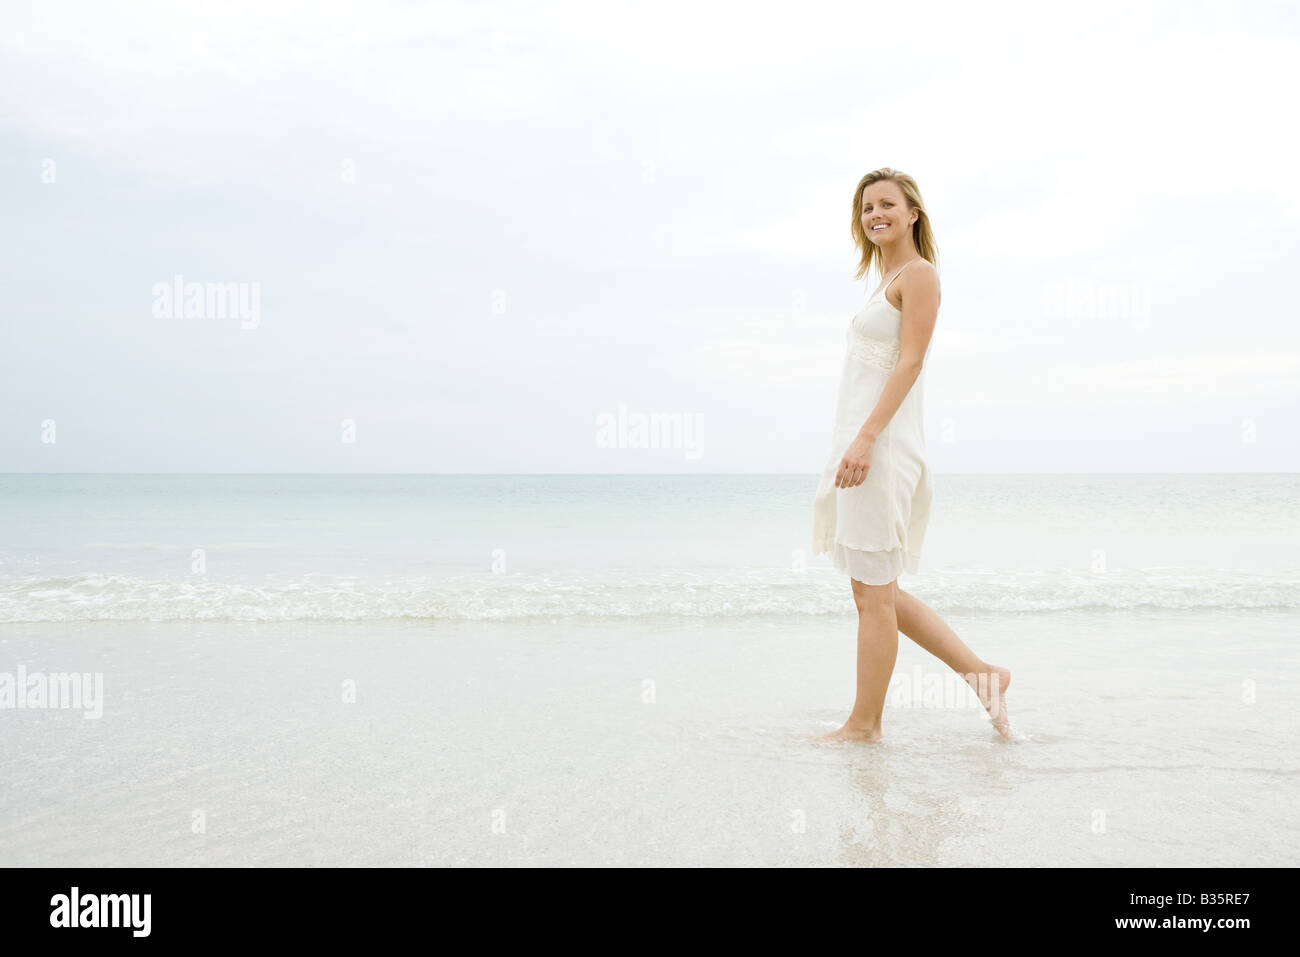 Woman walking at the beach in the surf, smiling at camera - Stock Image